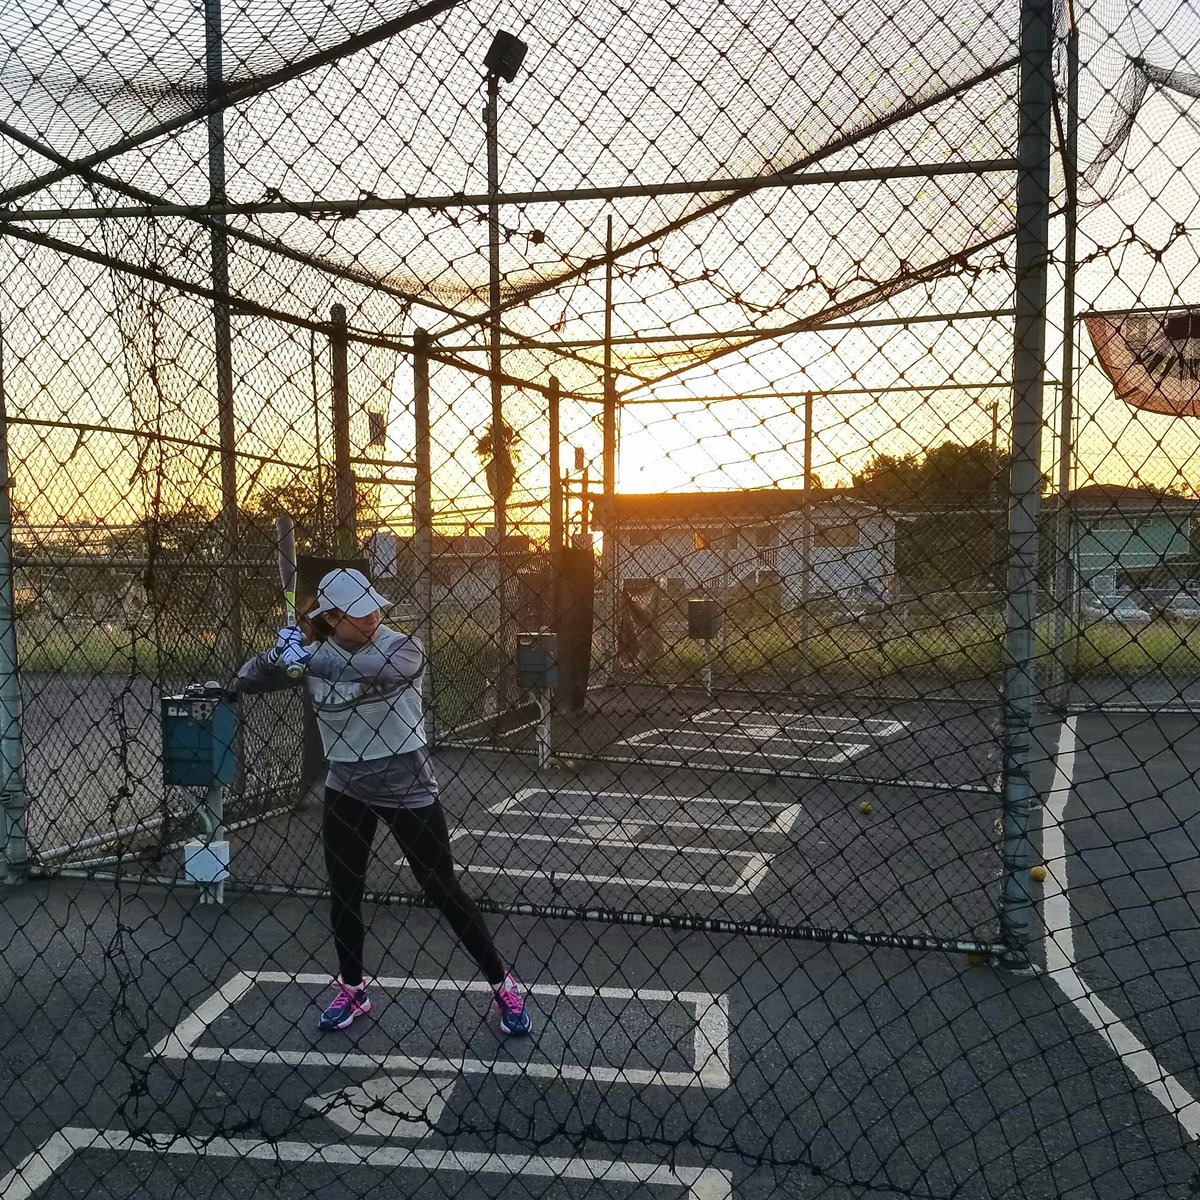 Kihei batting cages